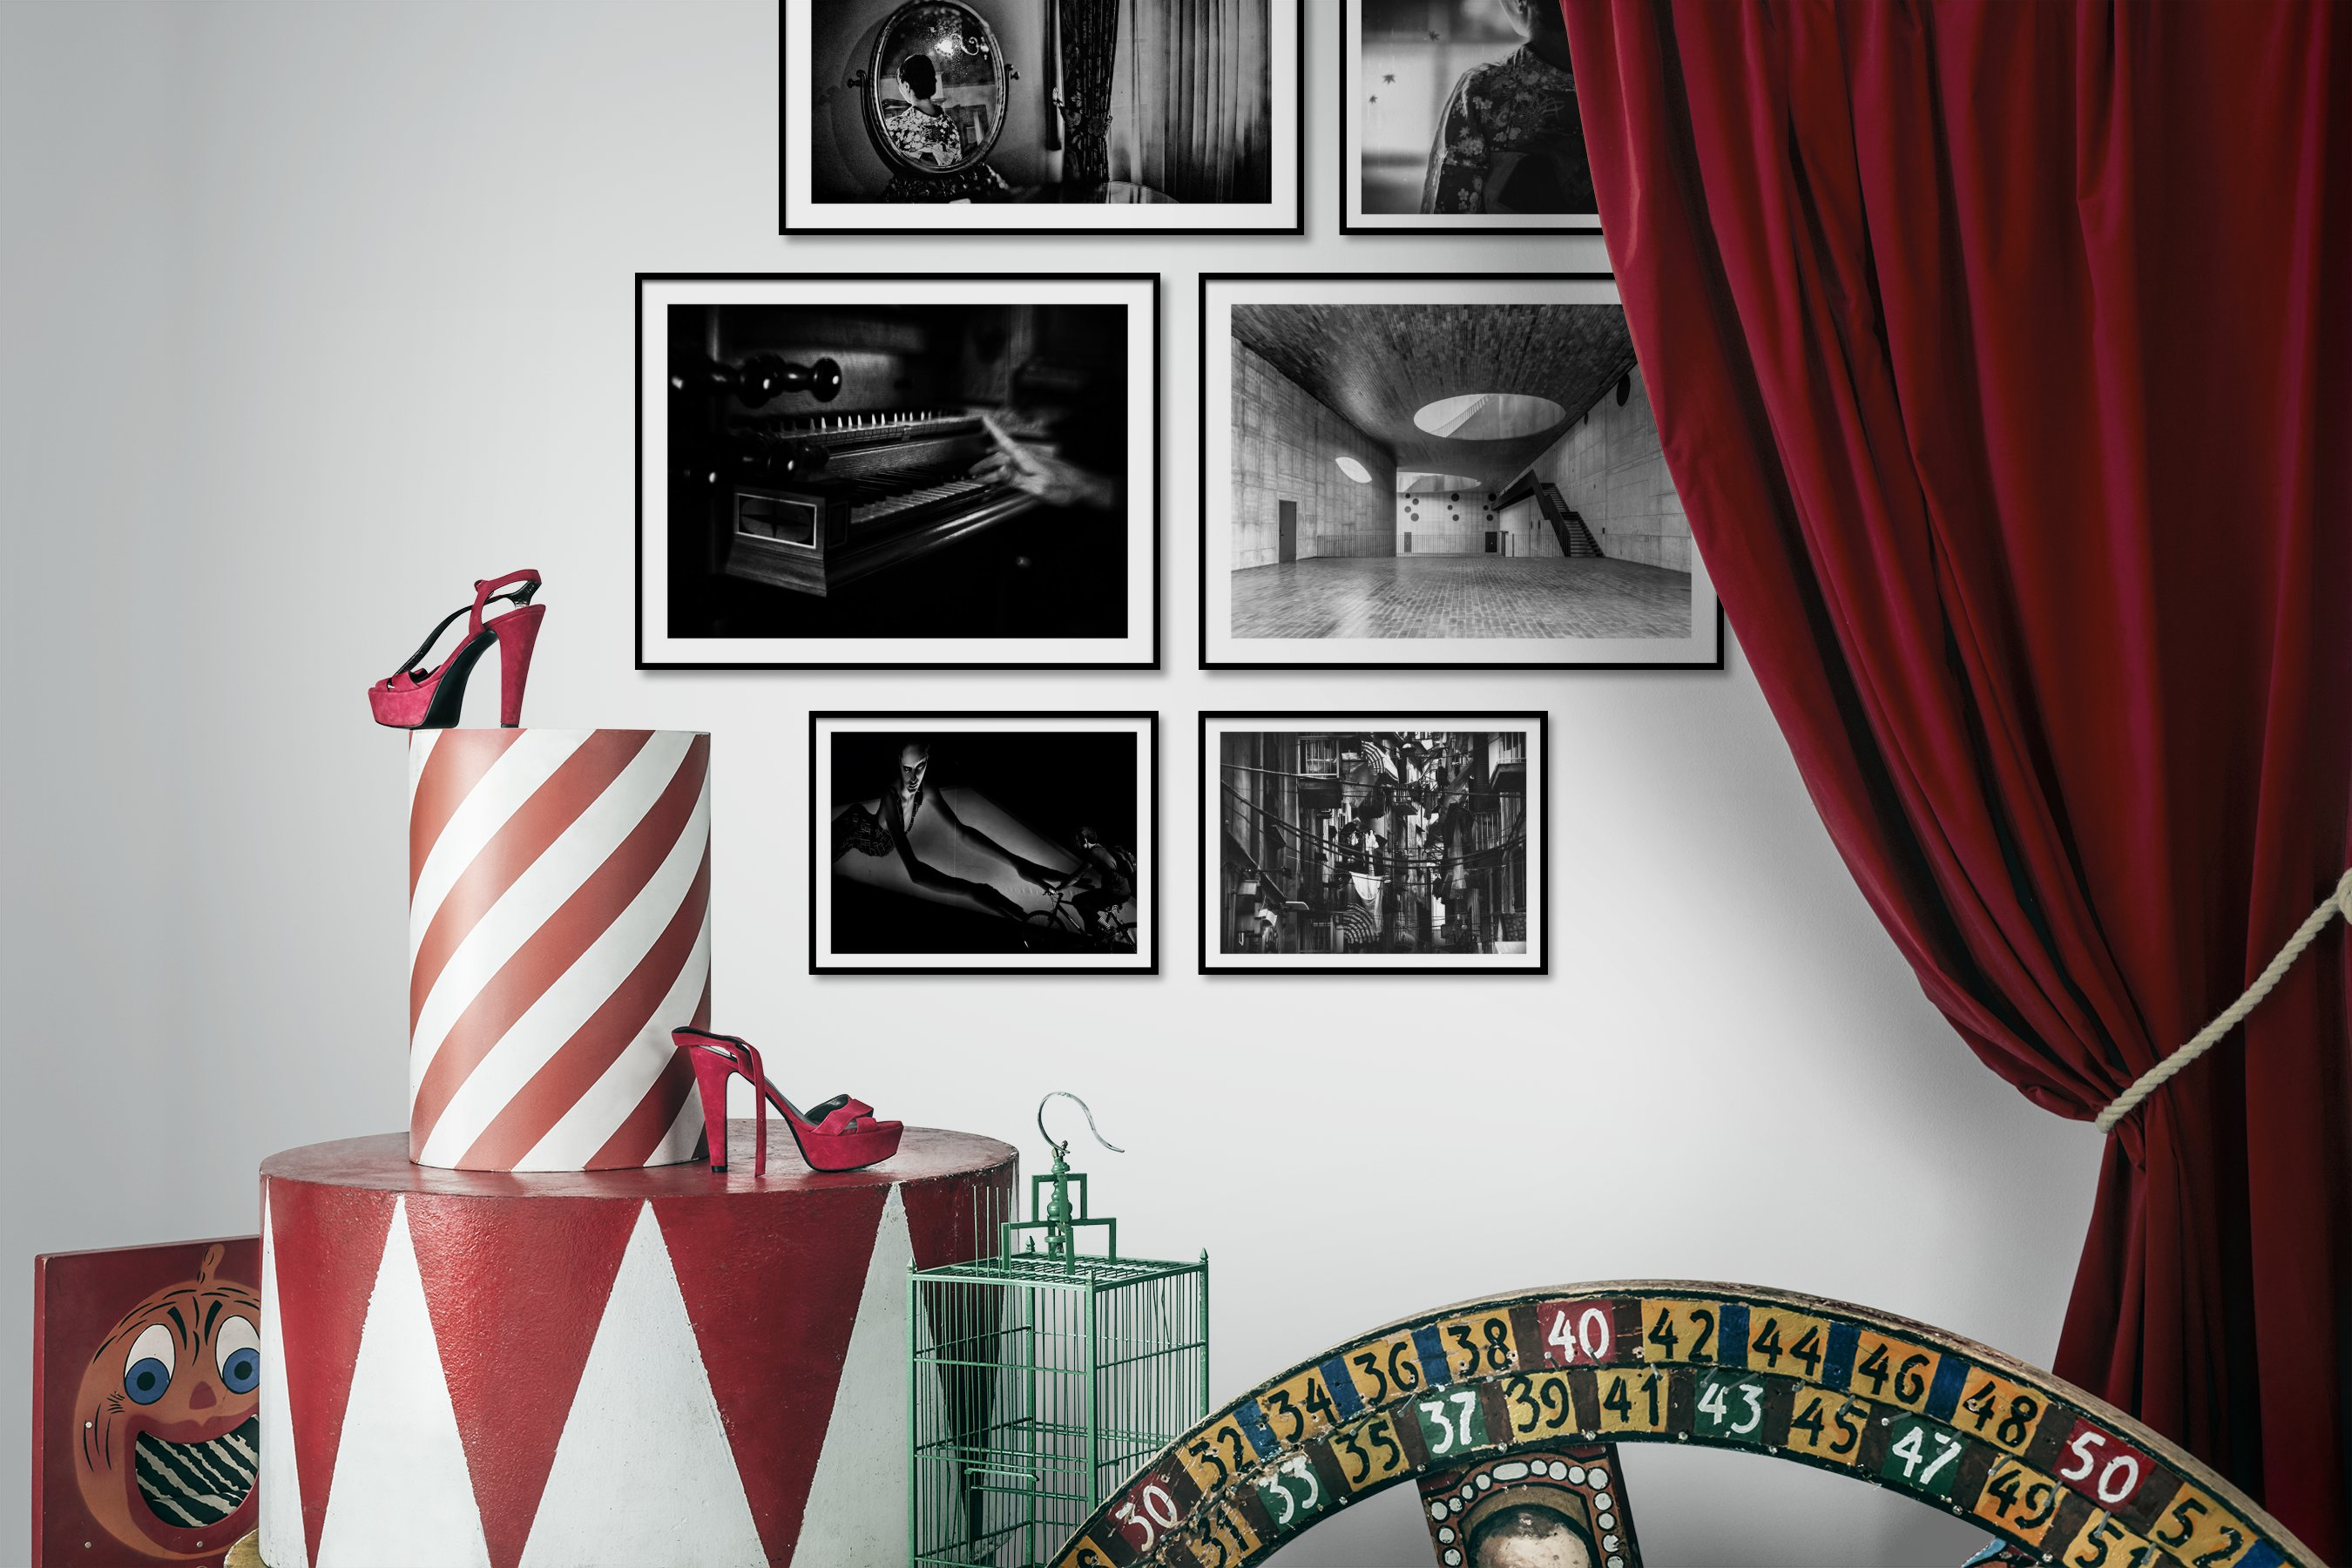 Gallery wall idea with six framed pictures arranged on a wall depicting Fashion & Beauty, Black & White, Vintage, Artsy, and City Life